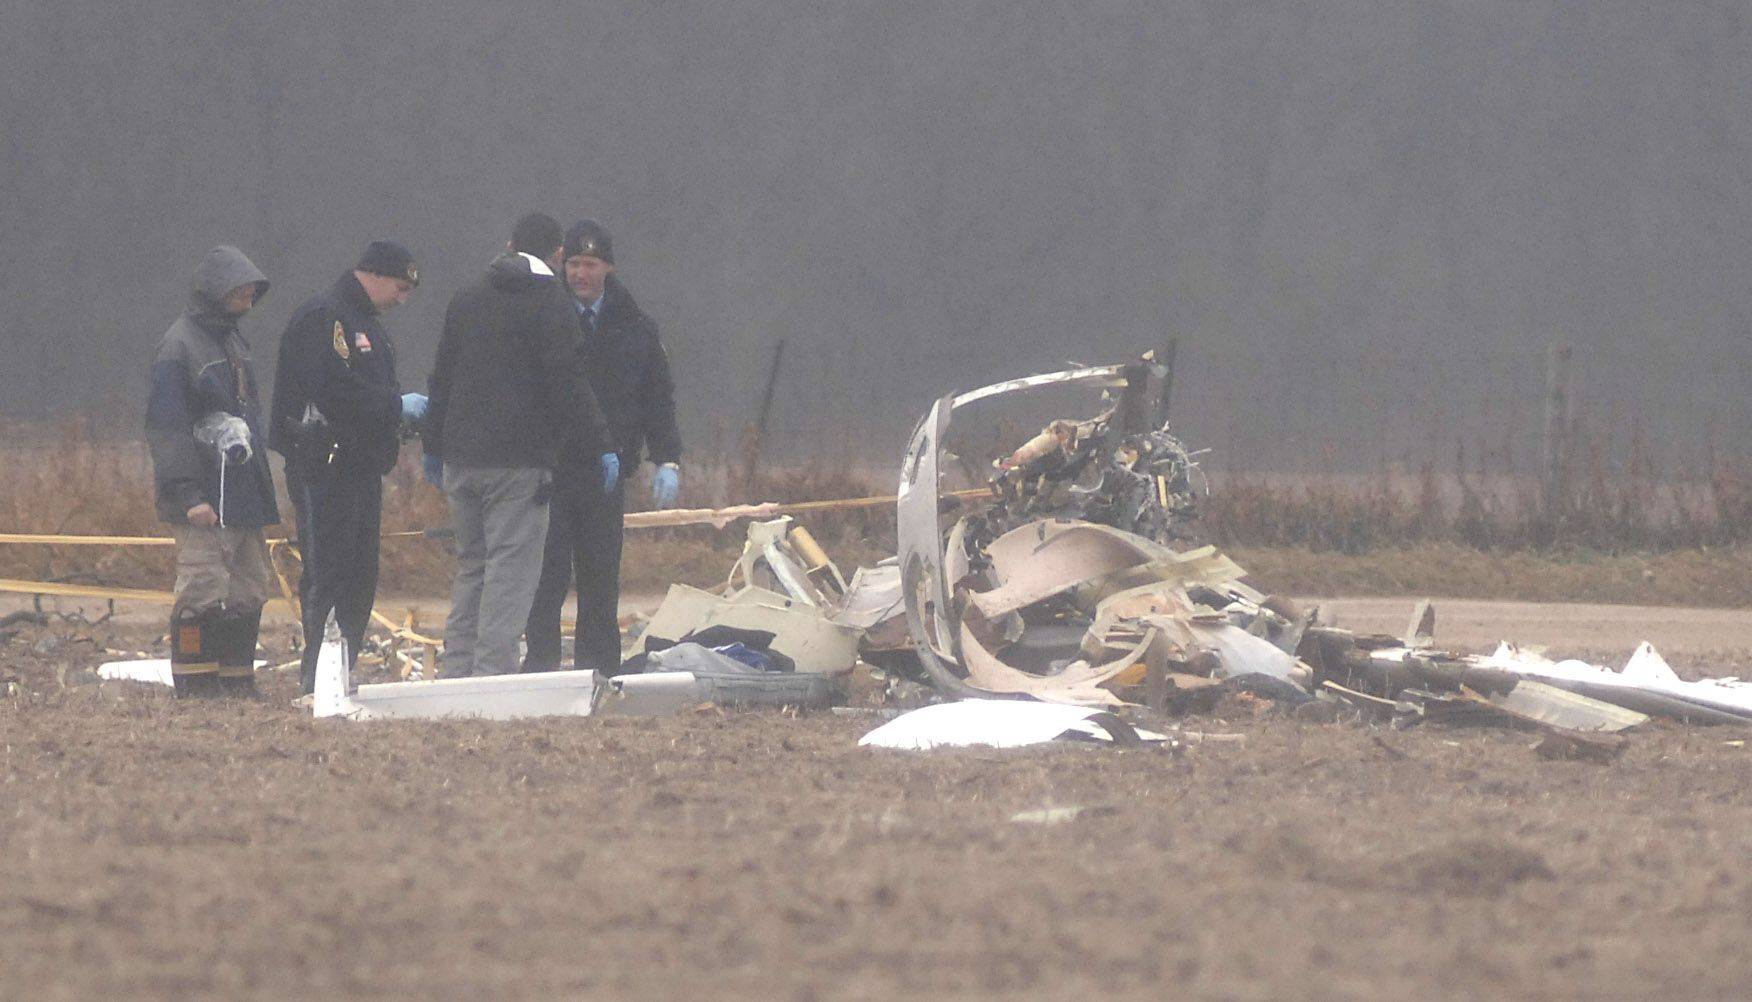 Police and the McHenry County coroner were on the scene of the fatal plane crash Saturday near Crystal Lake.